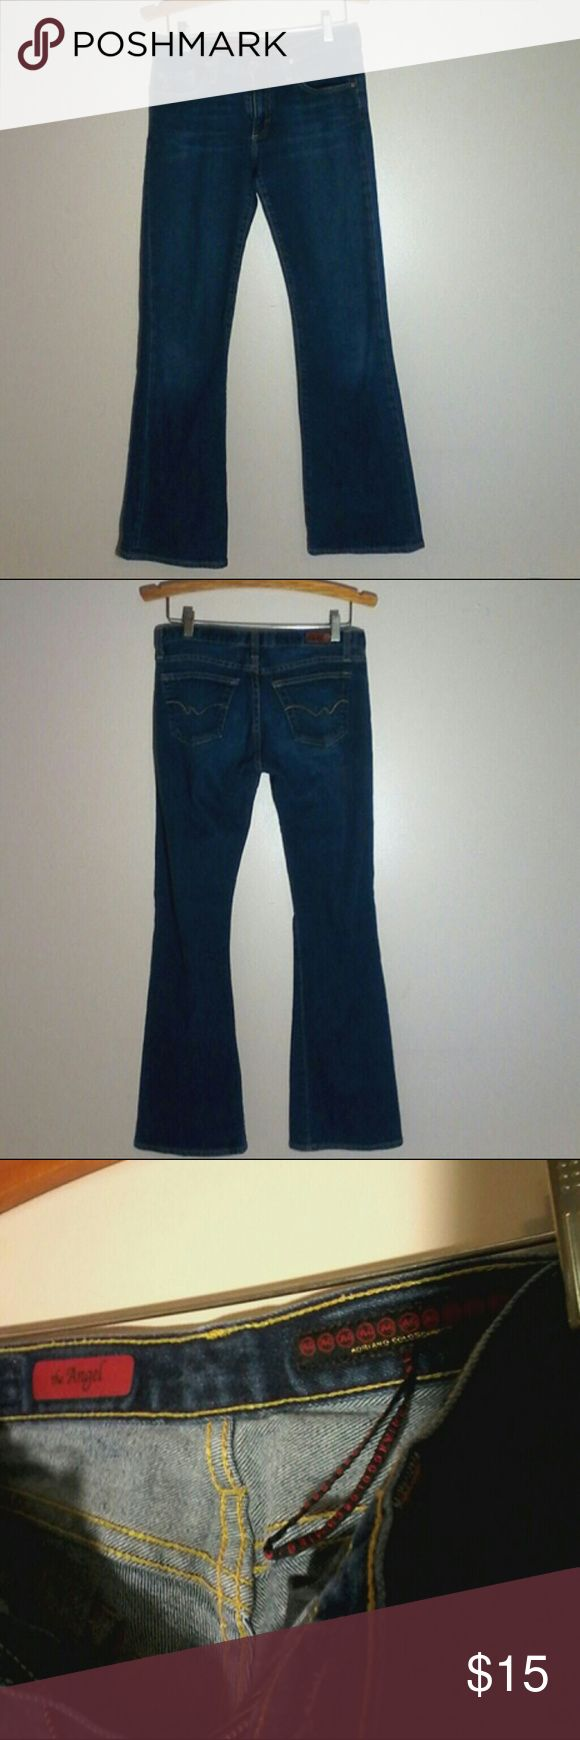 Adriano Goldschmied Jeans size 28 Only worn a few times, jeans are in great condition! Adriano Goldschmied Jeans